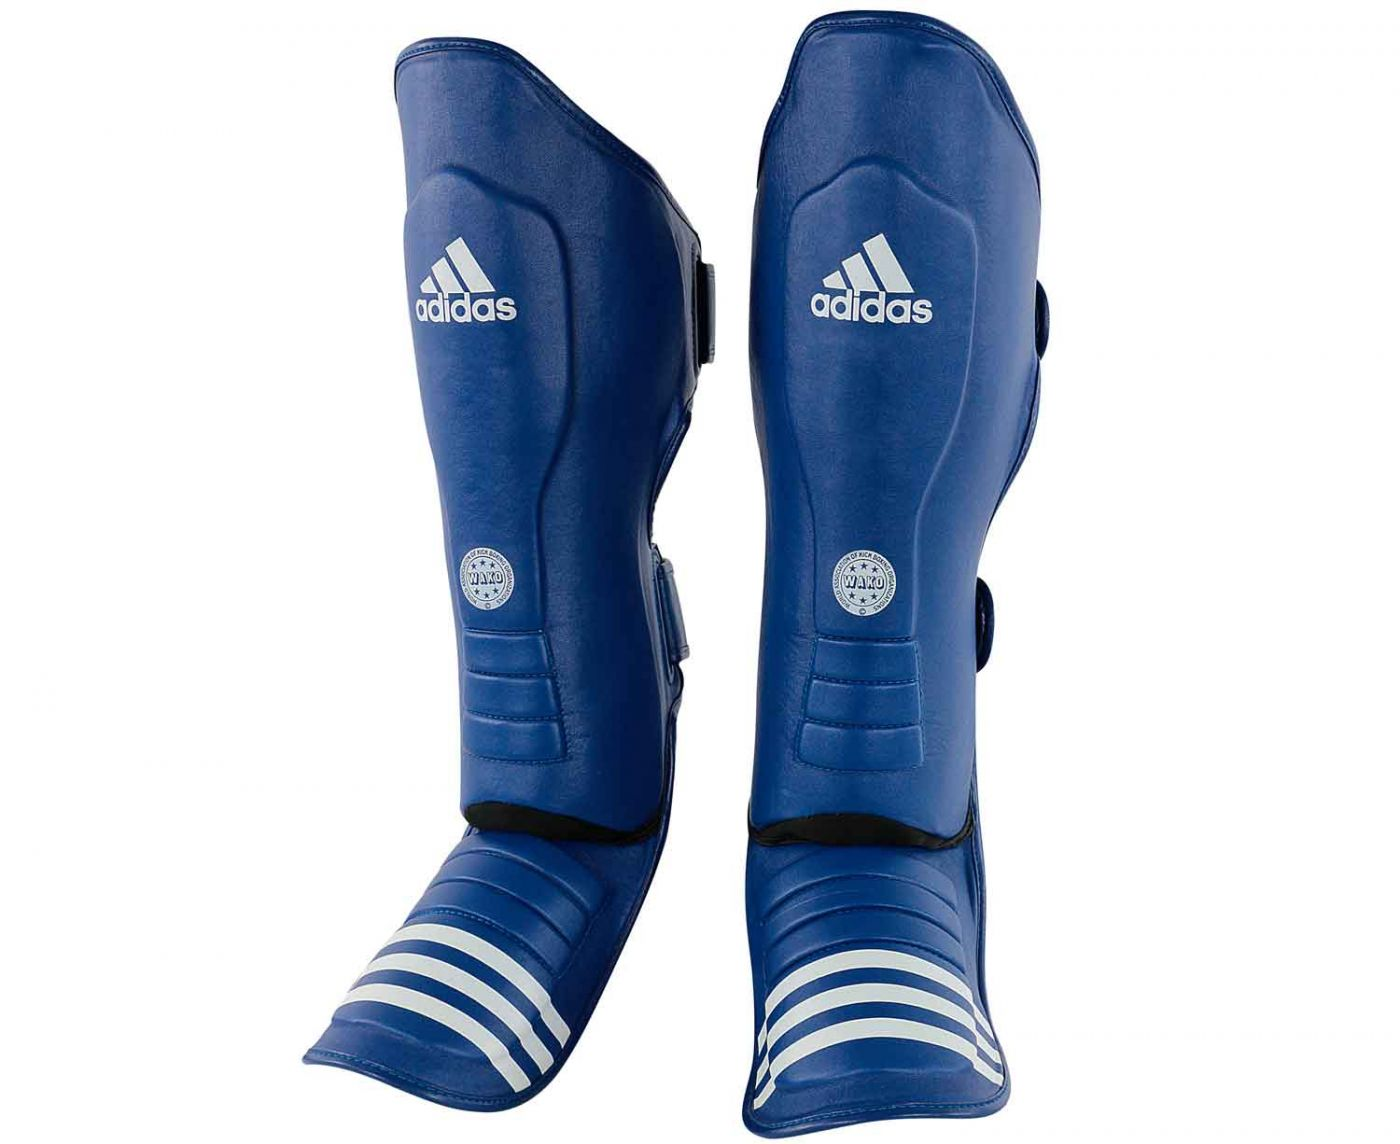 Защита голеностопа Adidas WAKO Super Pro Shin Instep Guards синяя, размер M, артикул adiWAKOGSS11